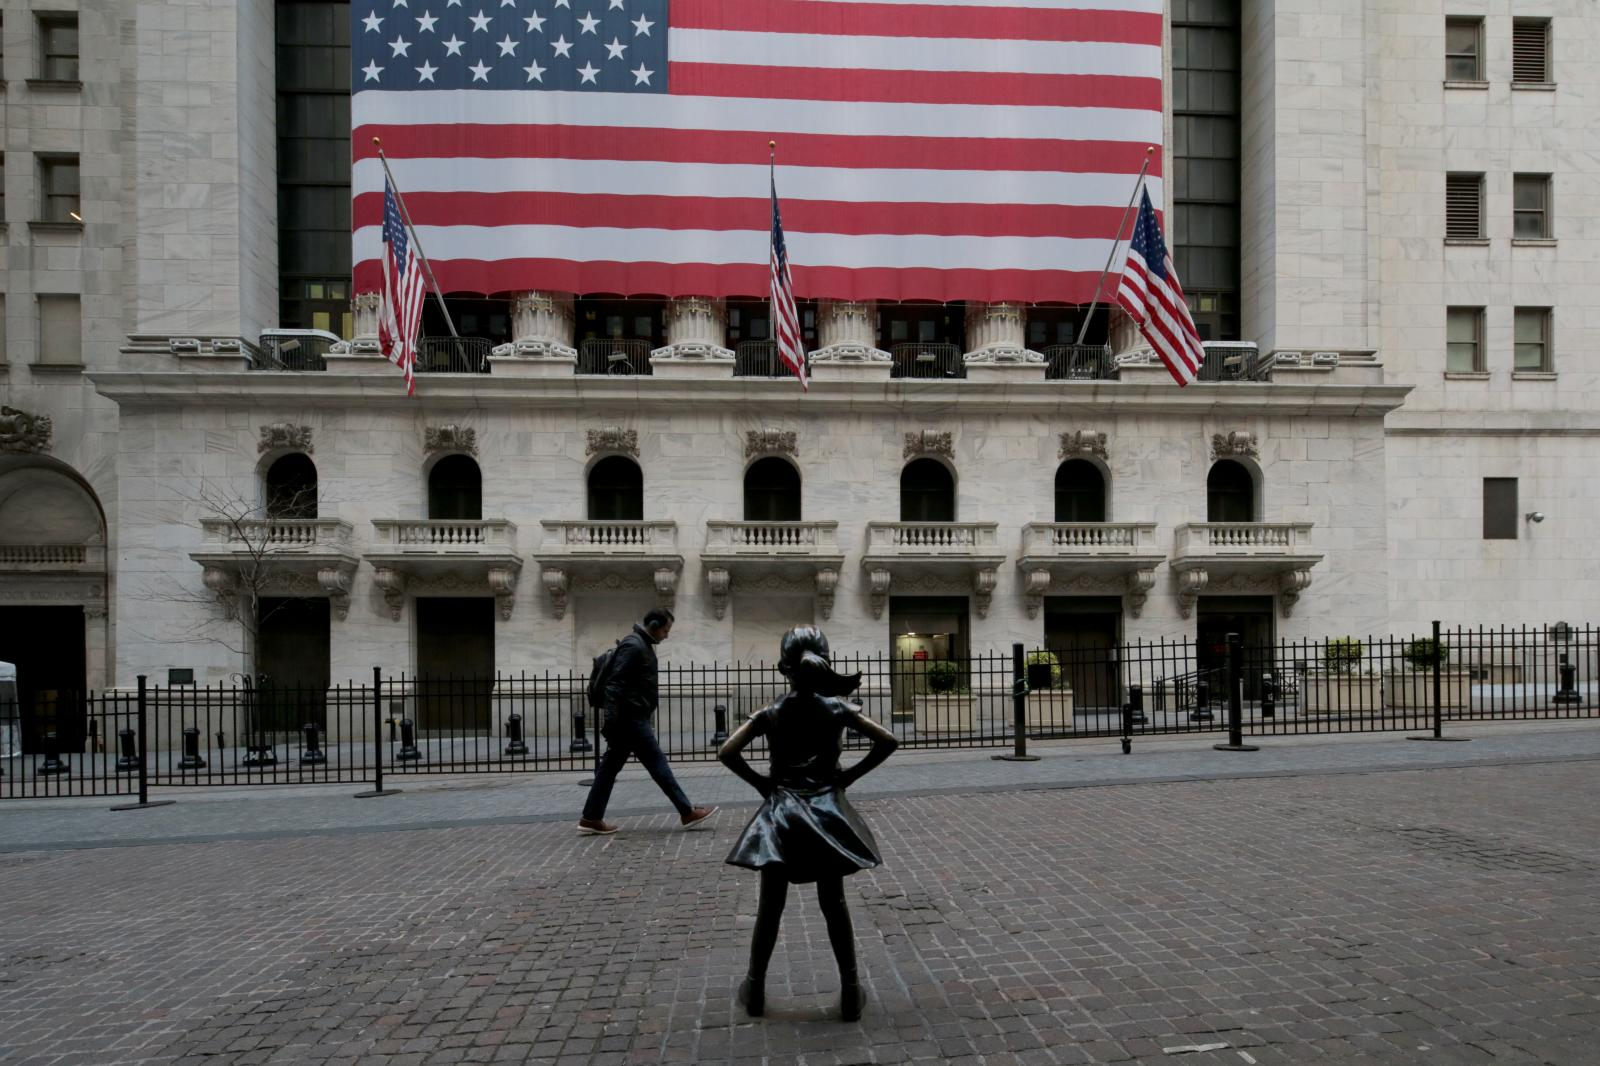 New York - April 22, 2020 -- Fearless Girl a bronze sculpture by Kristen Visbal on Broad Street in front of the New York Stock Exchange is seen wearing a facial mask Wednesday morning during the coronavirus pandemic outbreak. (Luiz C. Ribeiro for New York Daily News)